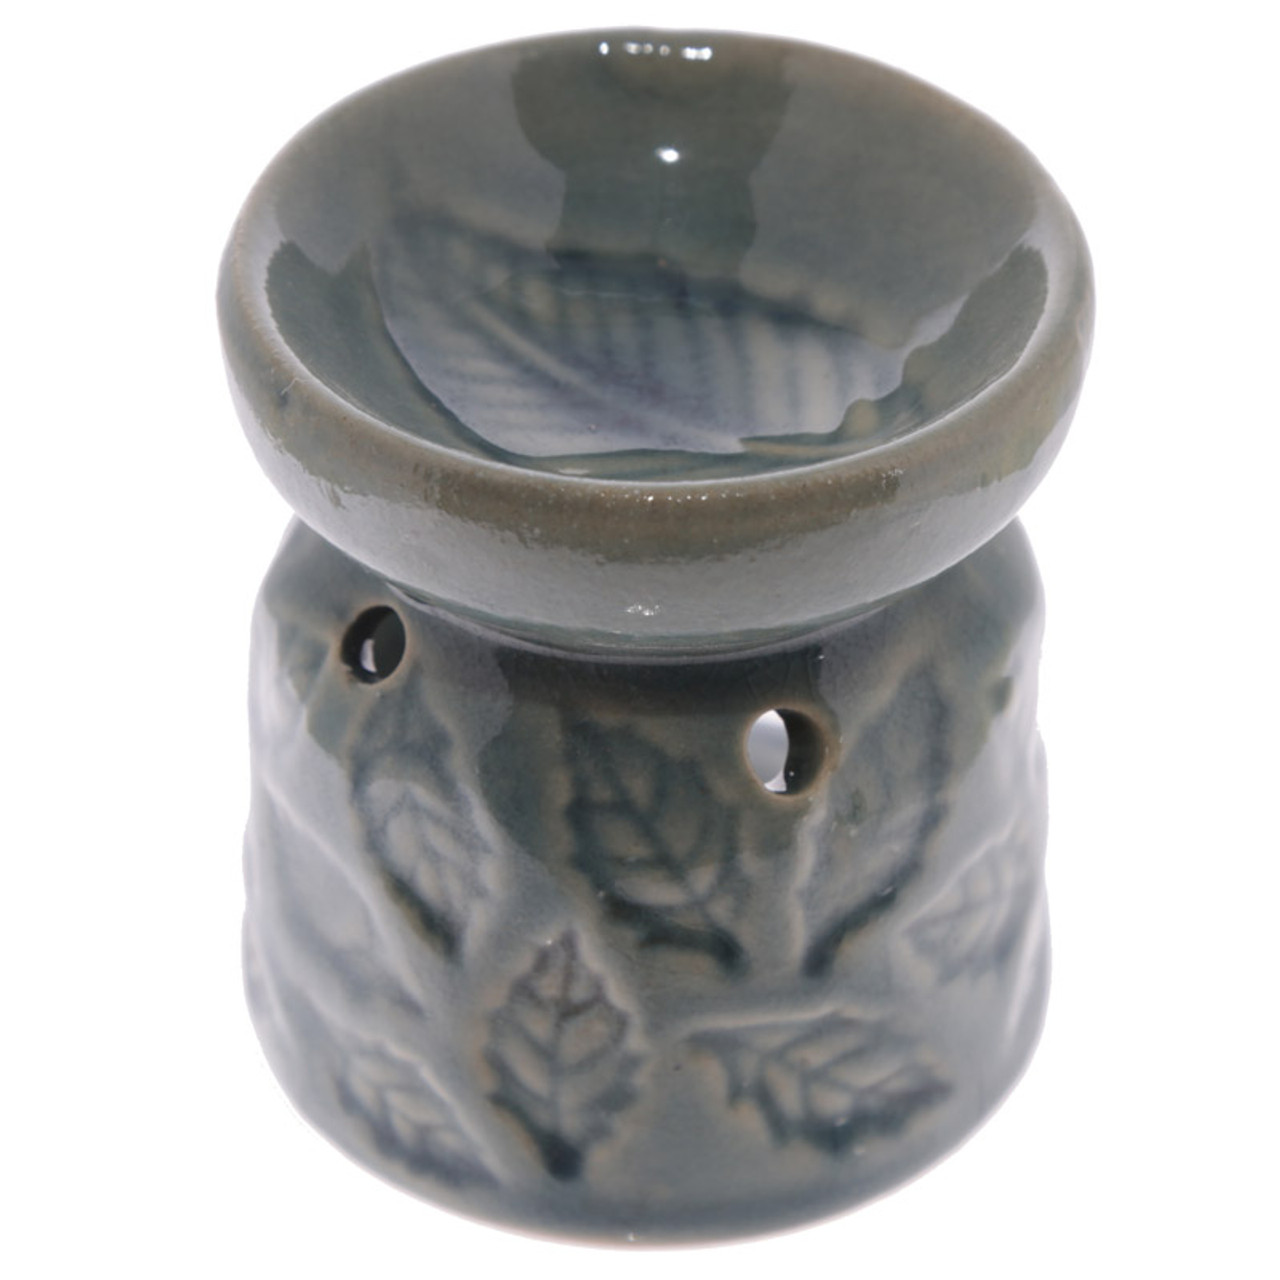 Oil Burner Ceramic Eden with Leaves Pattern